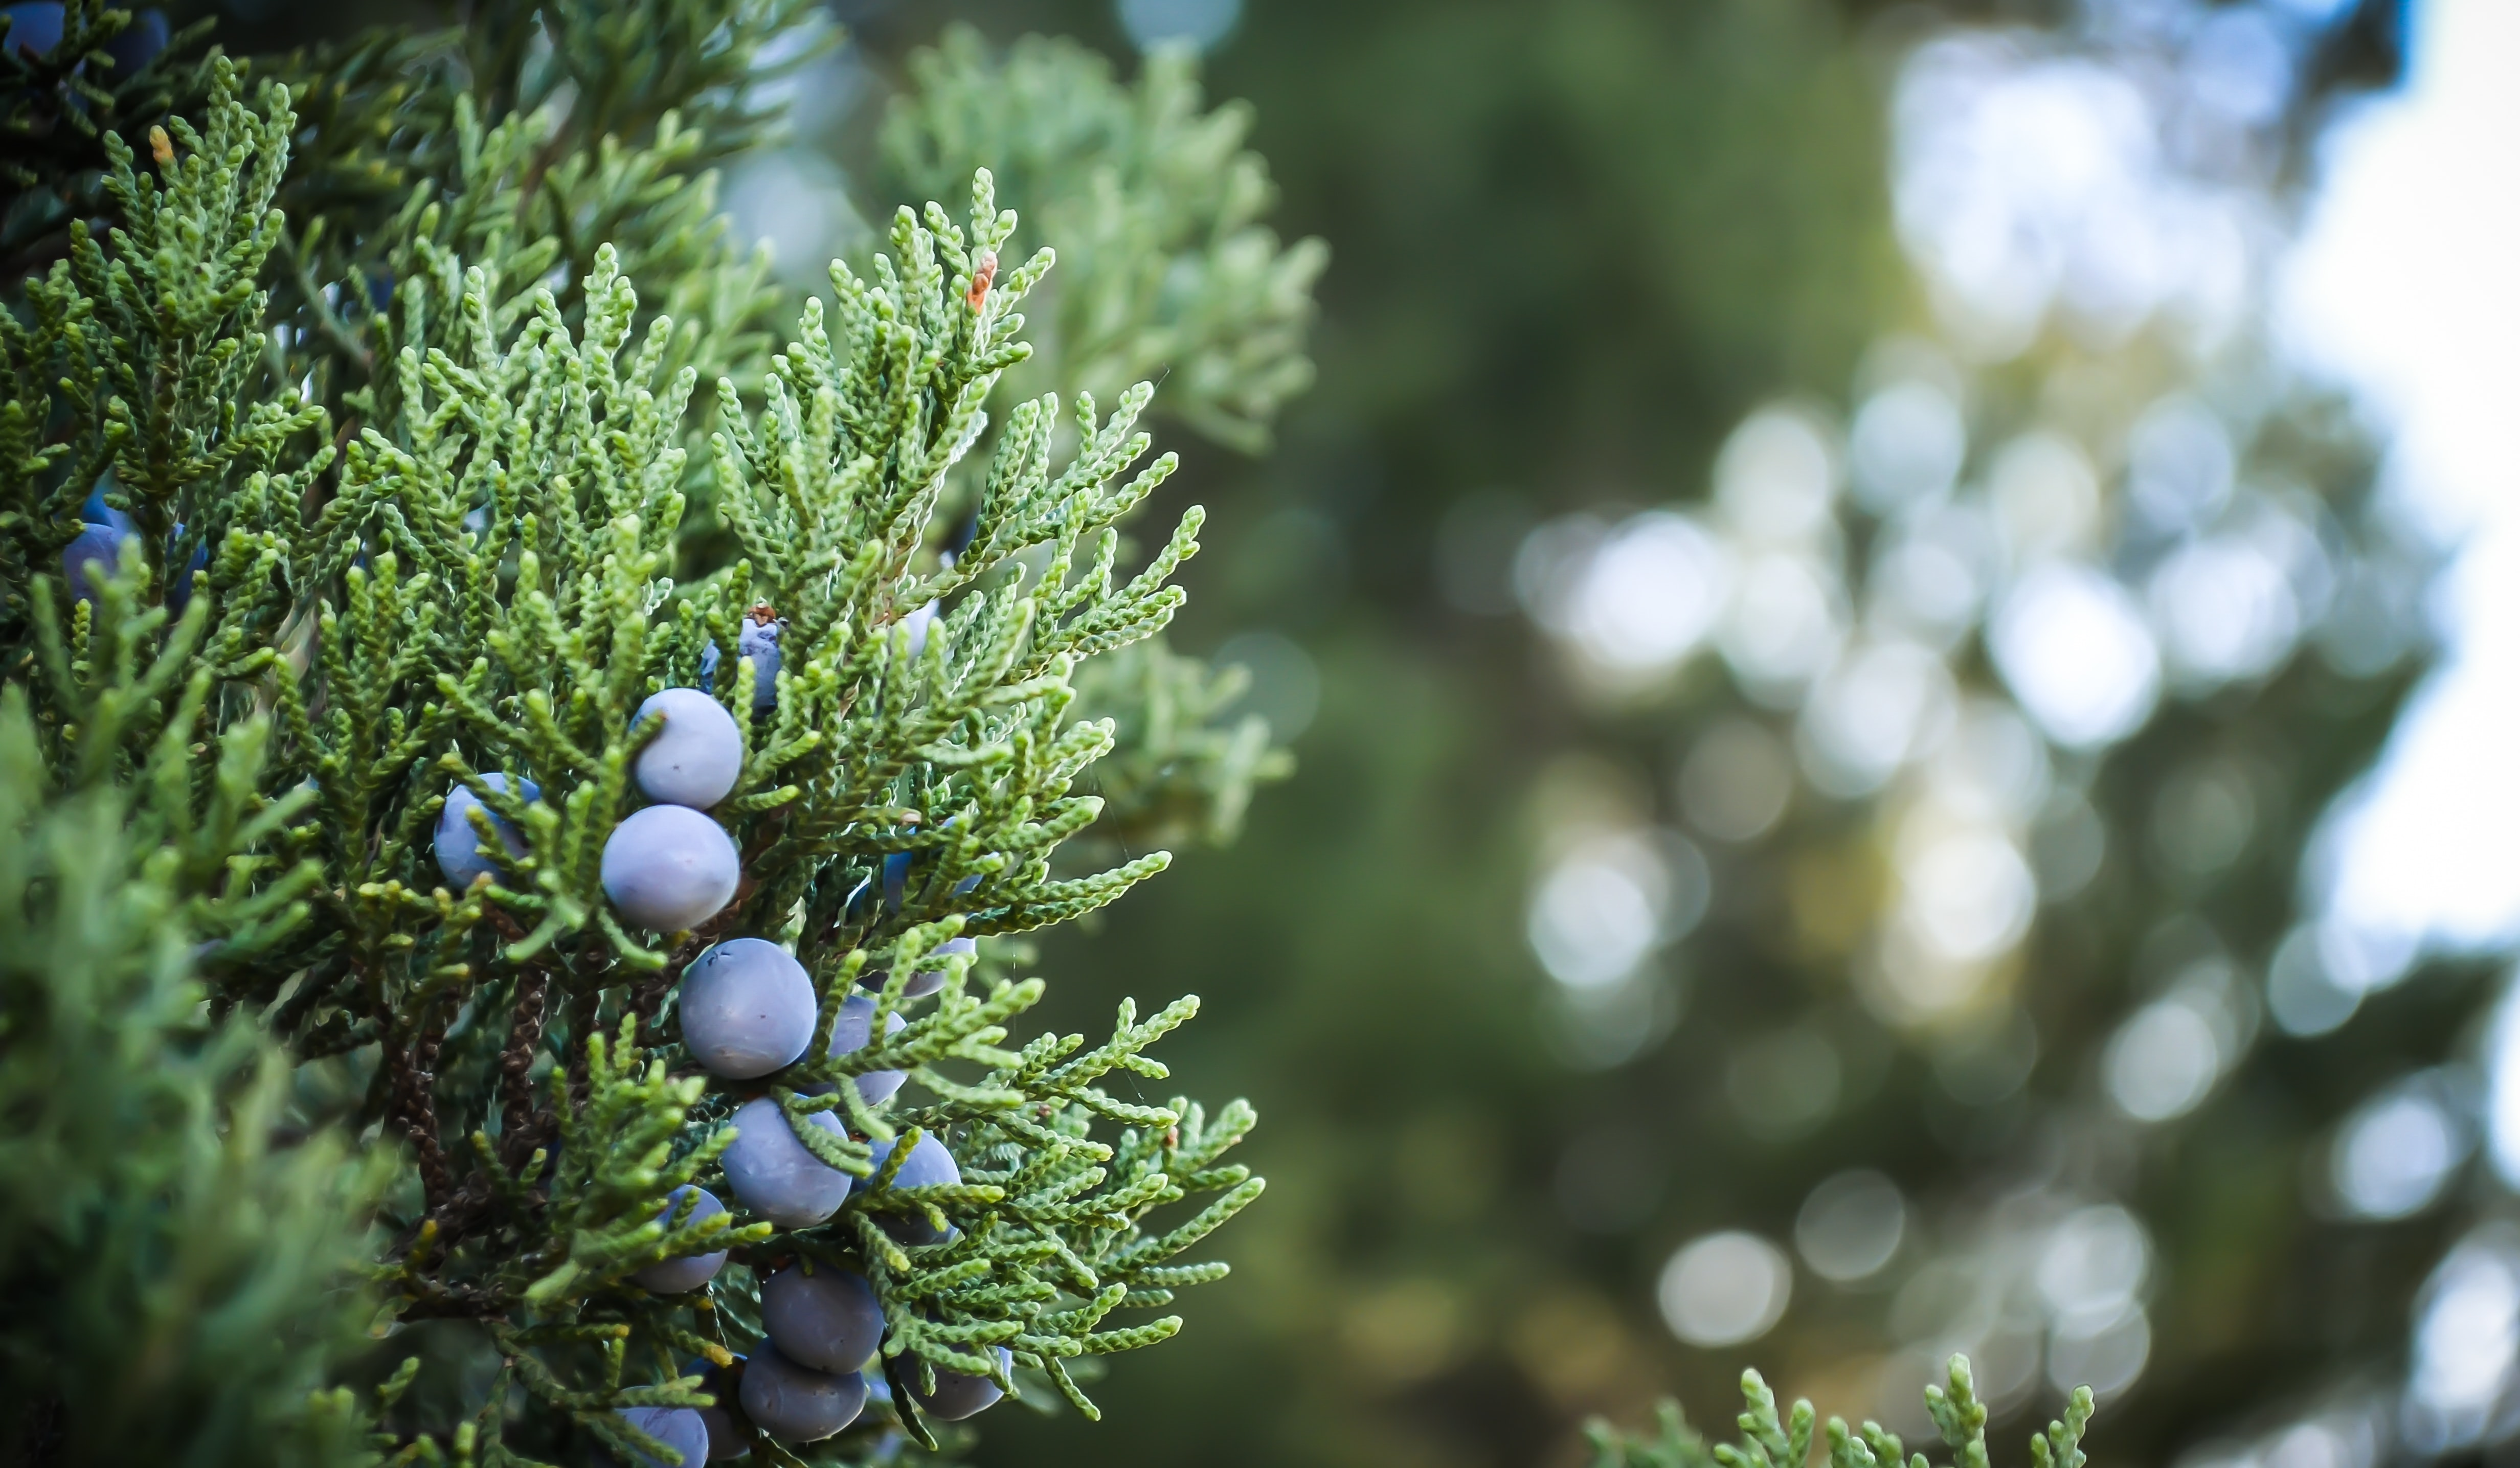 A close-up of a bunch of juniper berries on a branch